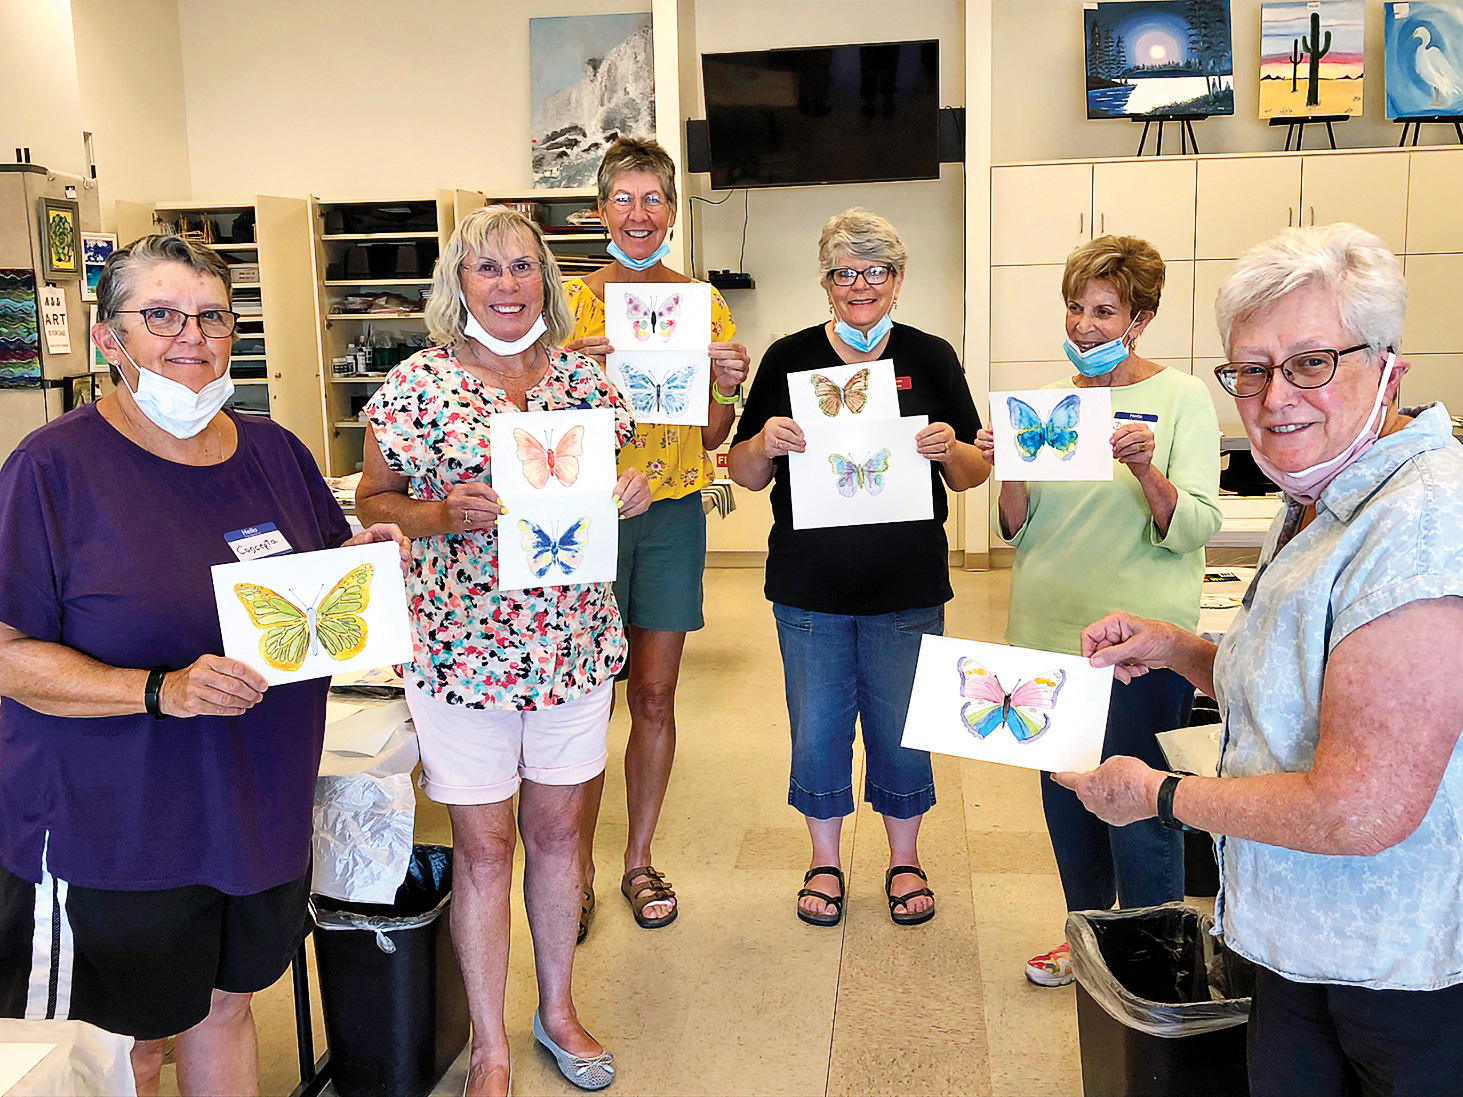 """The following participants got """"the butterflies"""" with Doreen Beers, the lead flyer (left to right): Concepta Savage, Linda Webb, Maryan Hopkins, Doreen Beers, Diana Mikol, and Connie Wiletzky."""